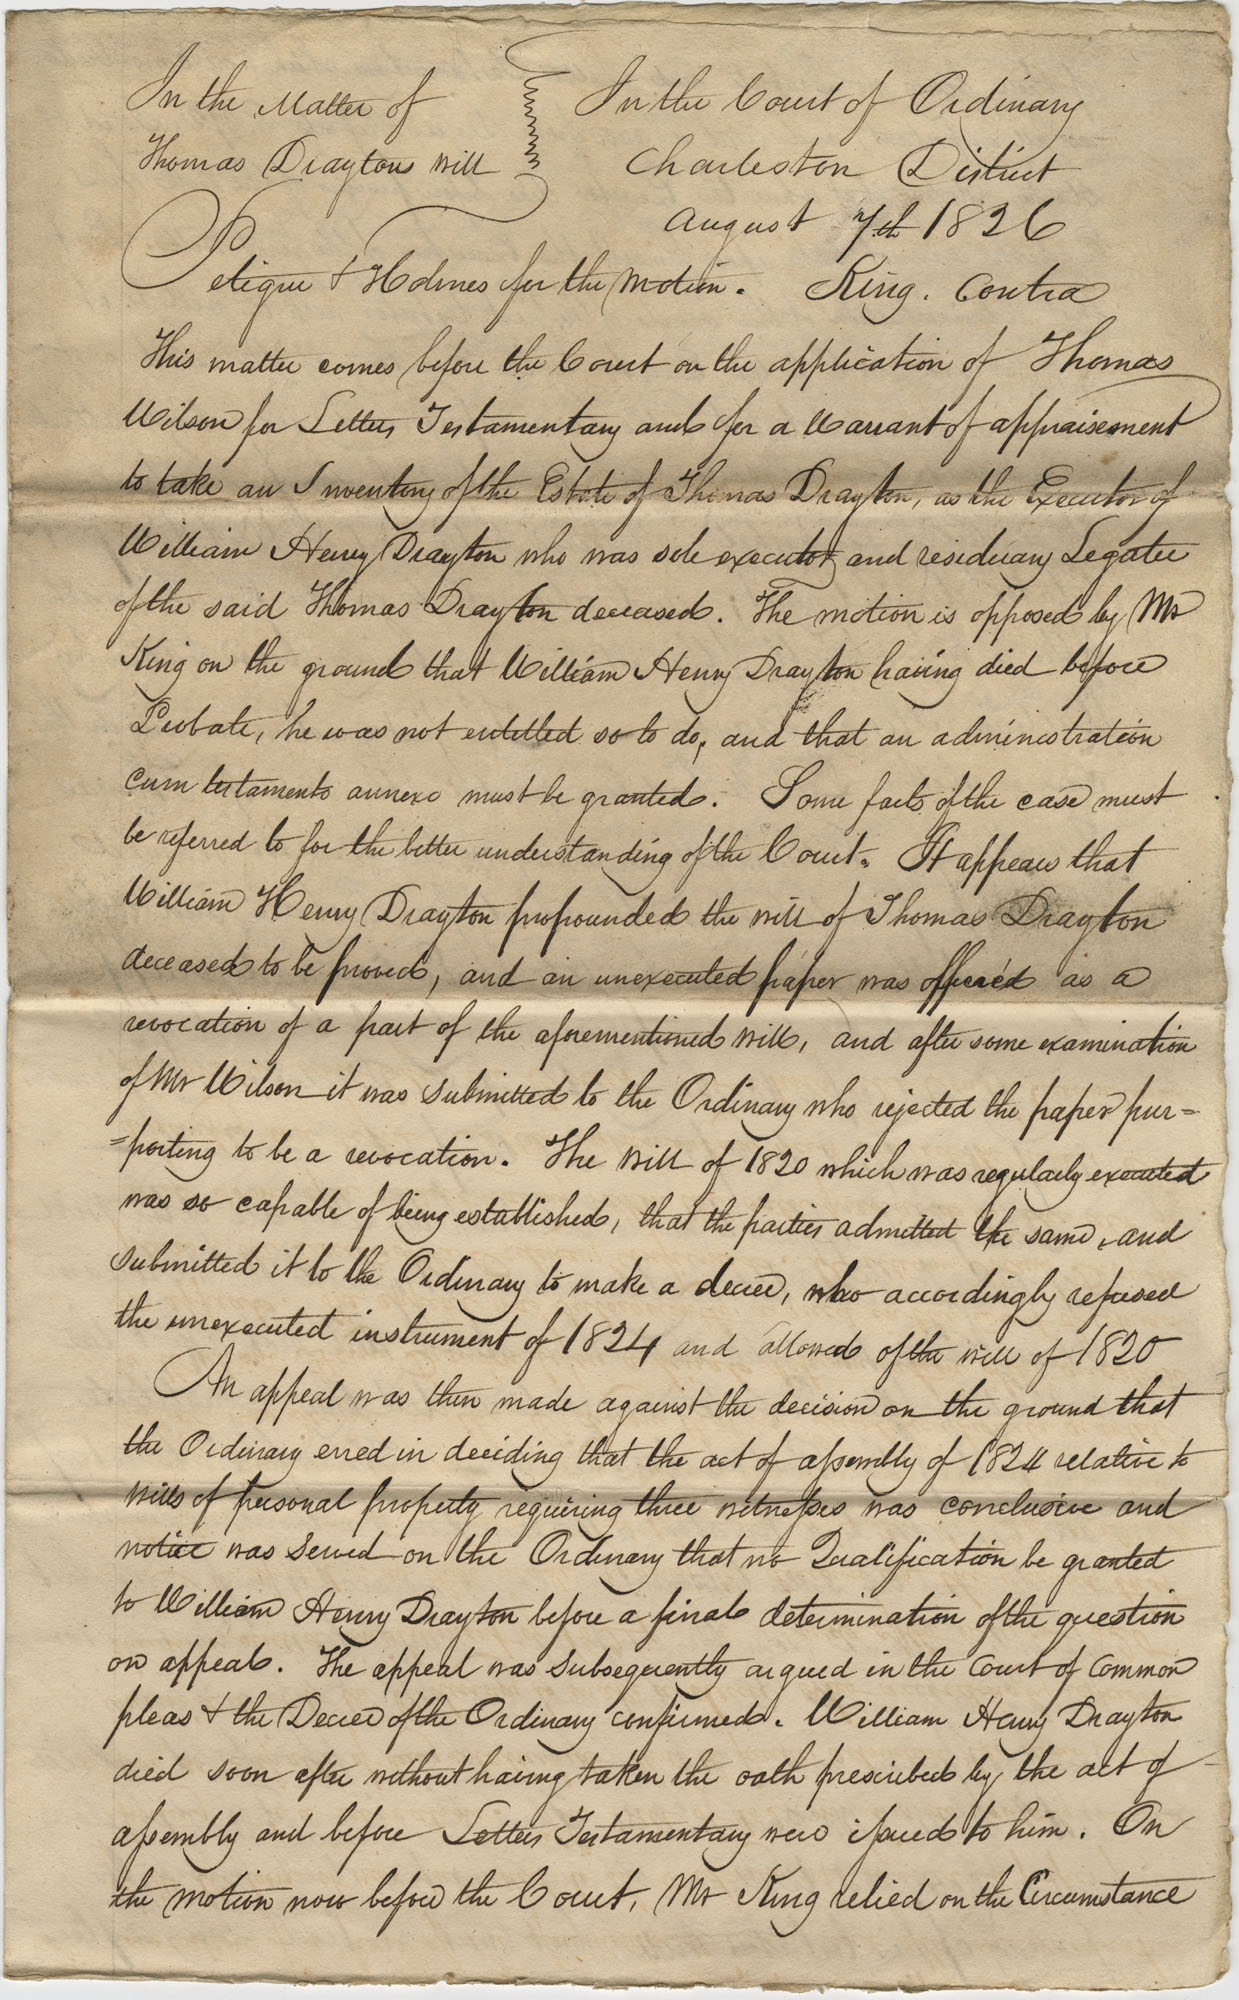 A copy of a decree in the Court of the Ordinary in Charleston, South Carolina, August 7, 1826